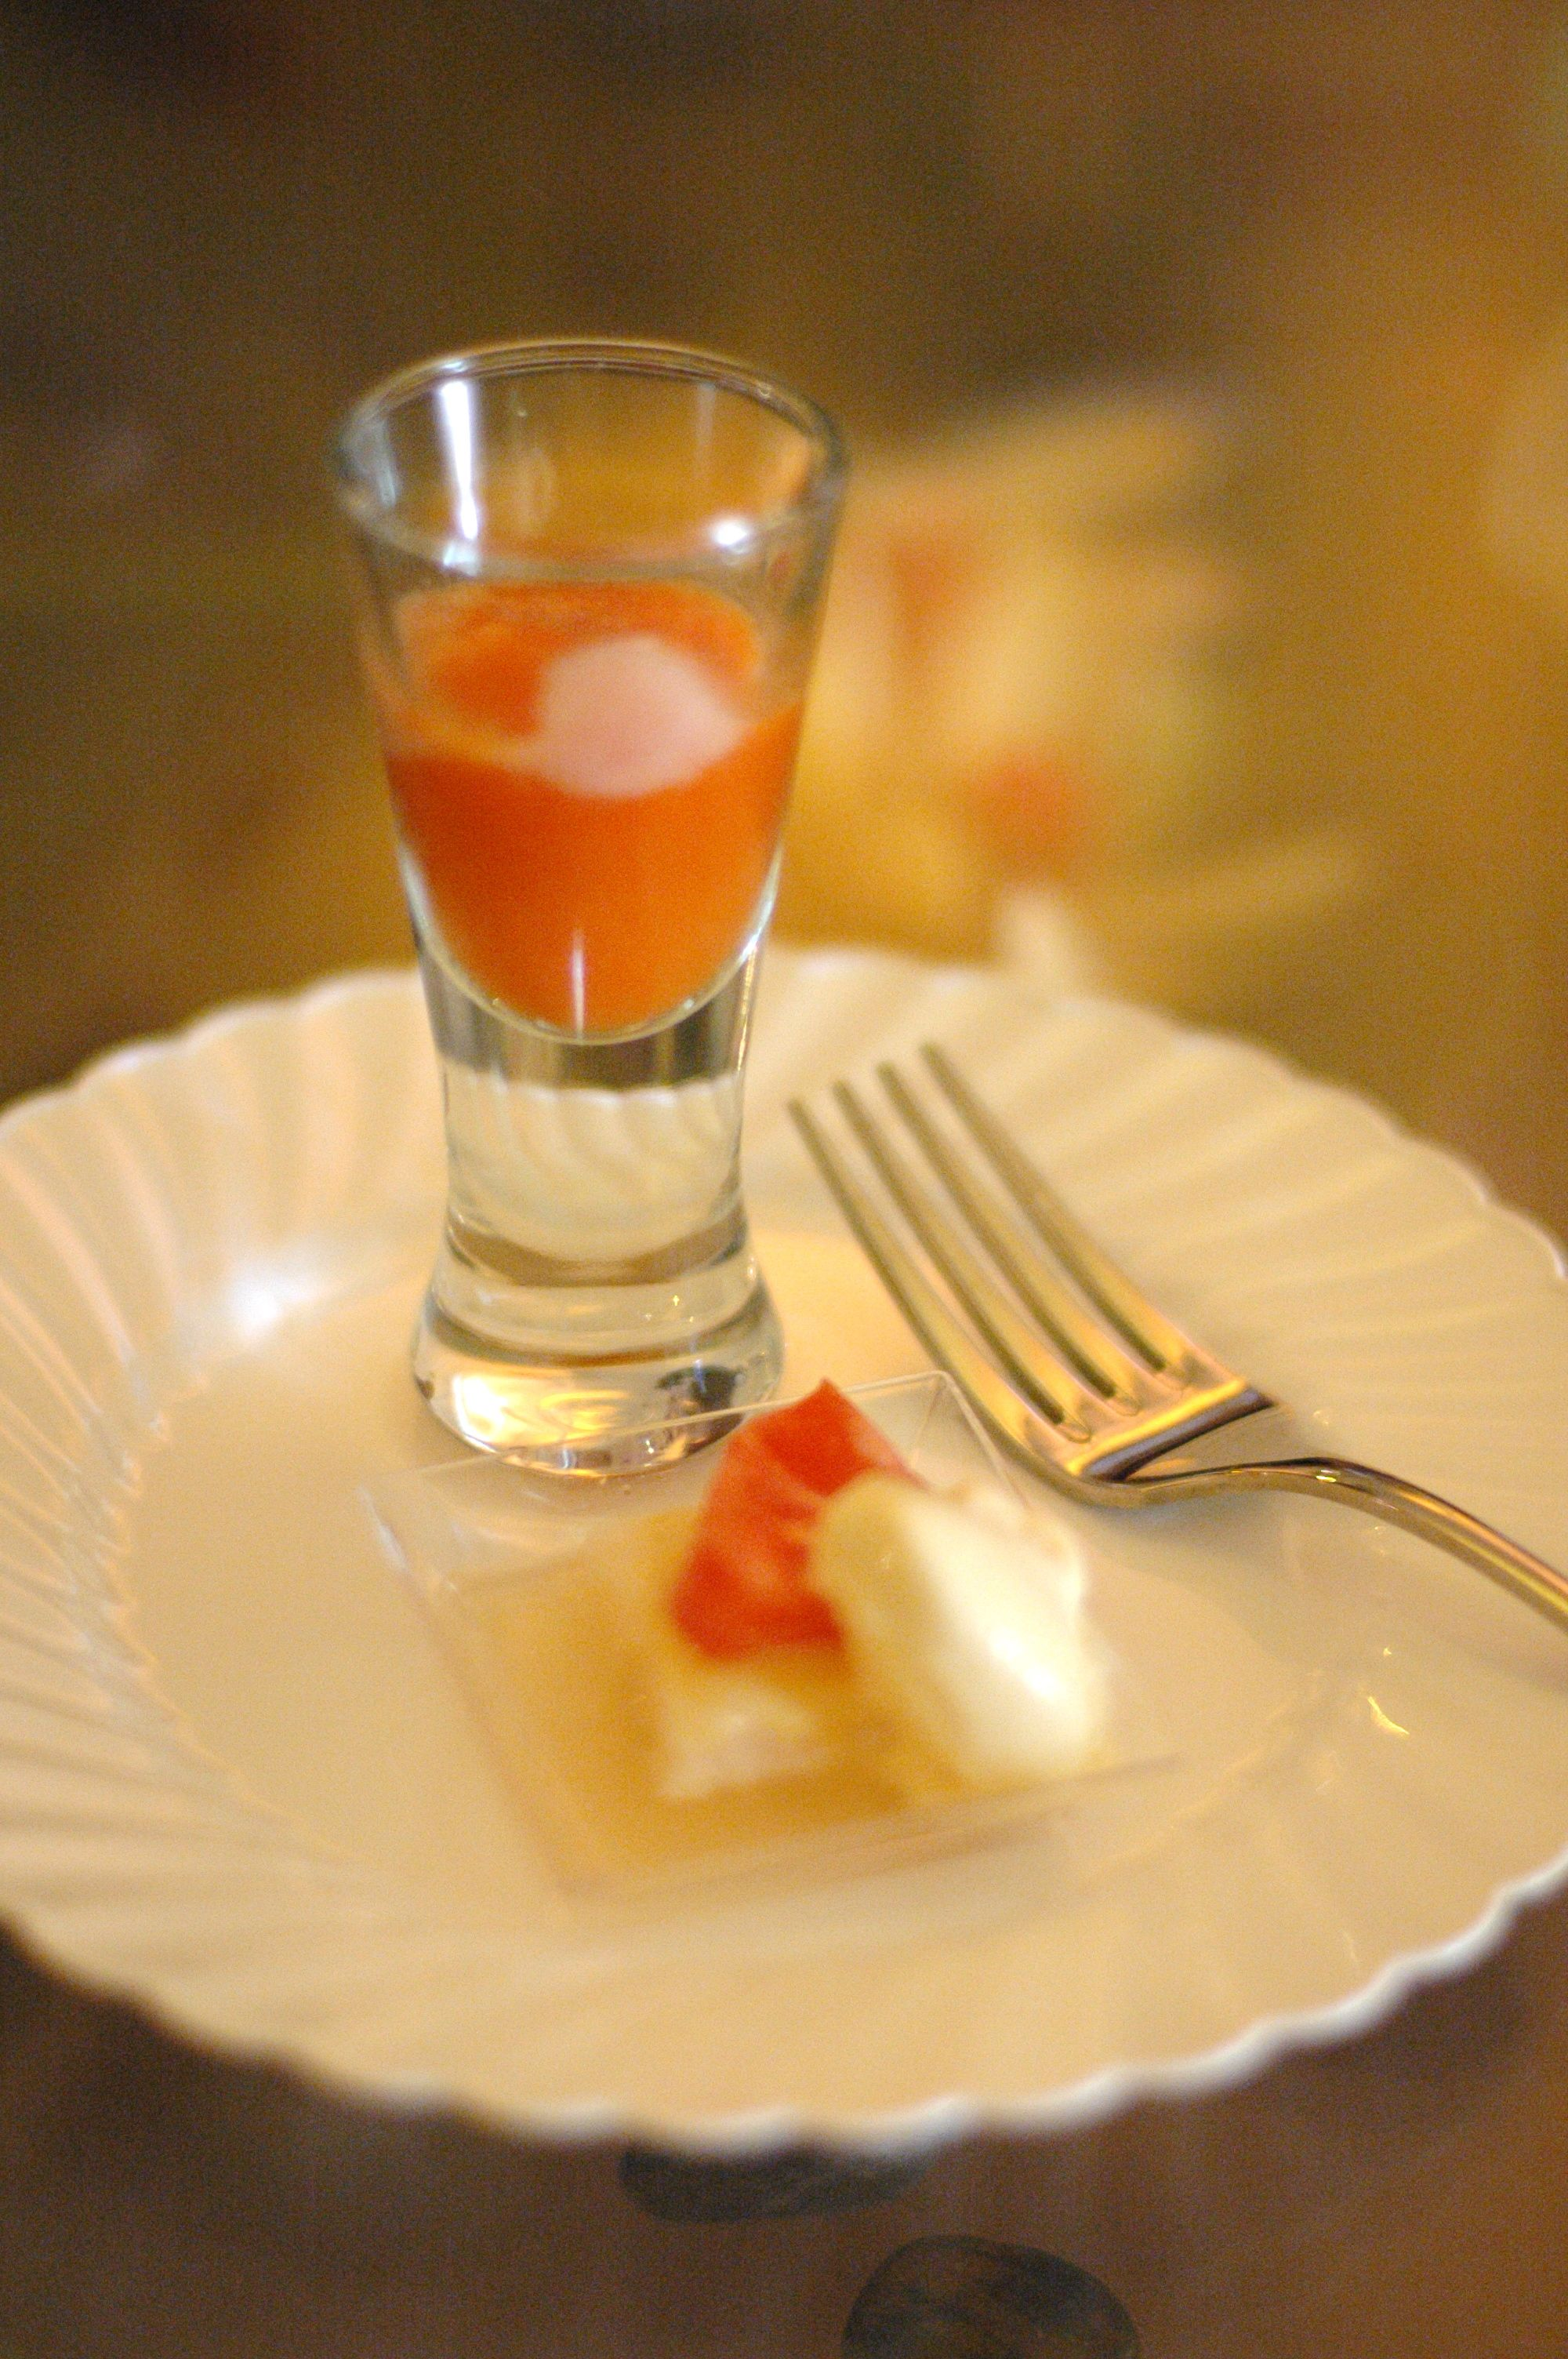 Joël Antunes created an amazing Tomato Sorbet Shooter with Salmon Sashami and Dijon Ice Cream